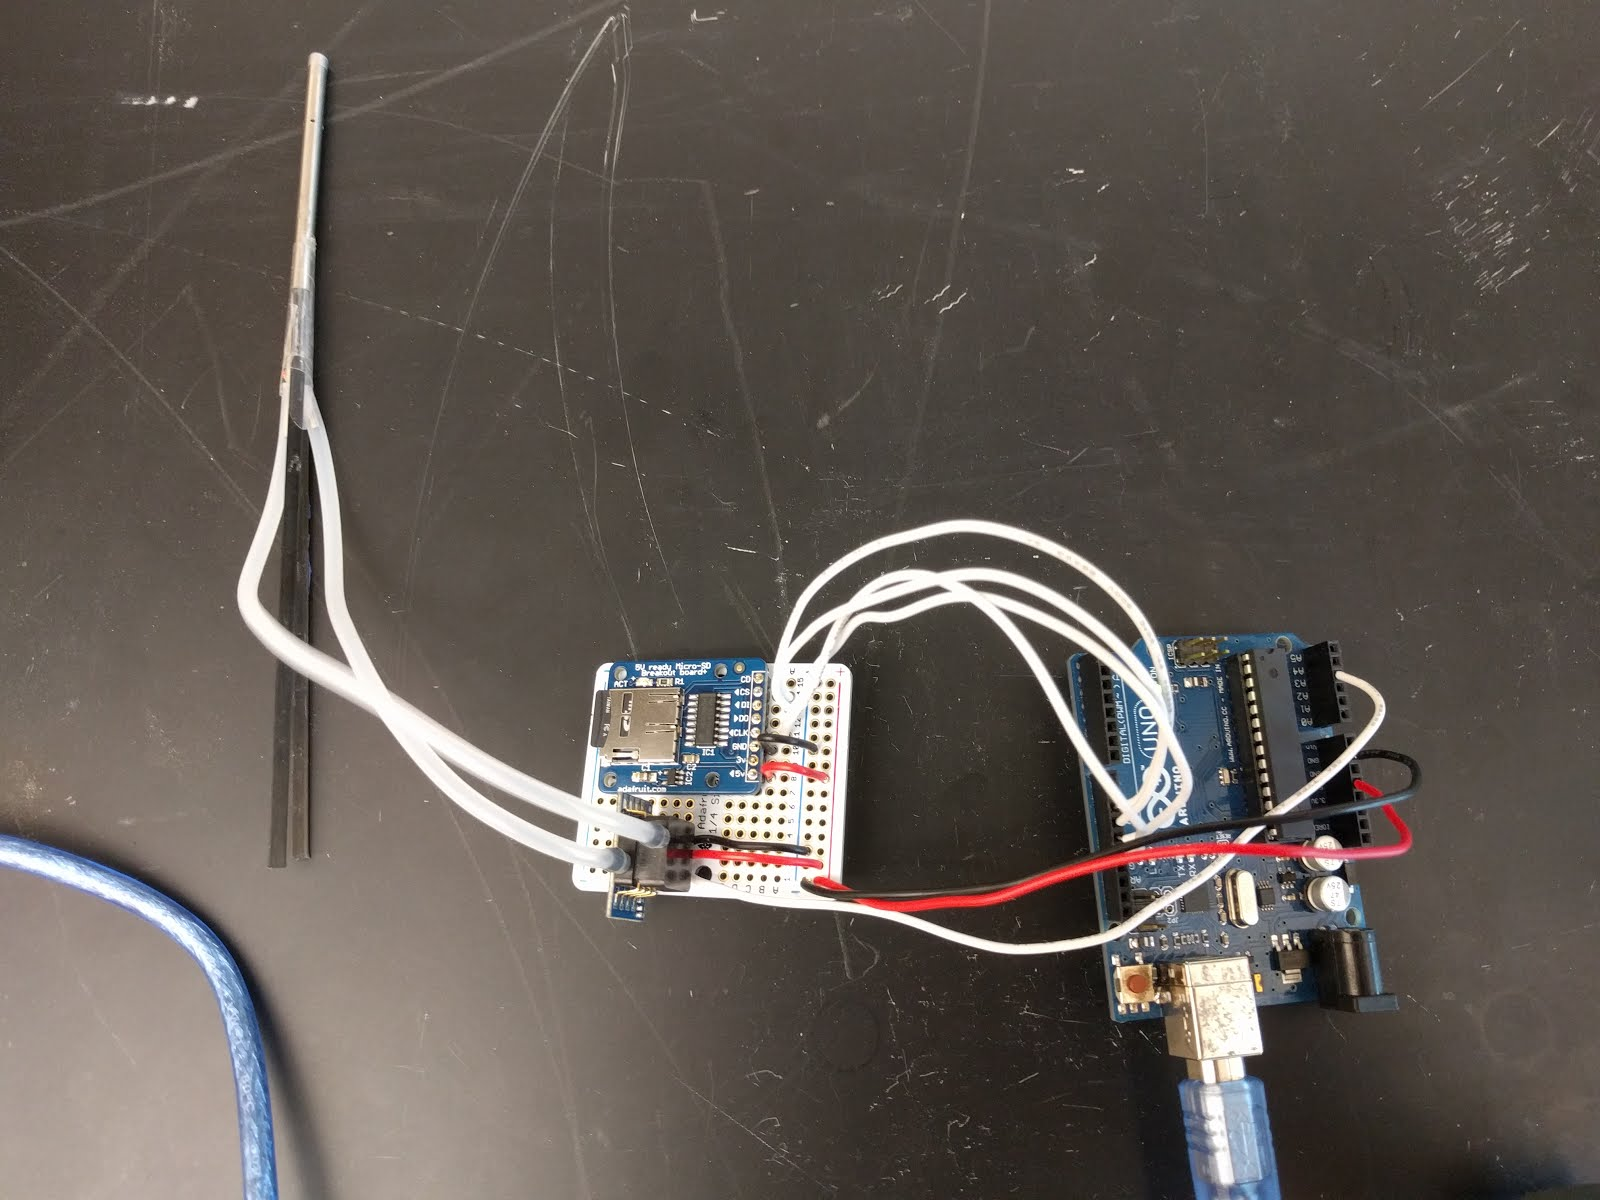 Wiring Arduino Processing Pitot Tube Diagram And Data Fast Lab Tutorials The For Circuit Completed Is Shown Above Theres Not Much Too It Plug In Silicon Tubes Make Sure To Watch This